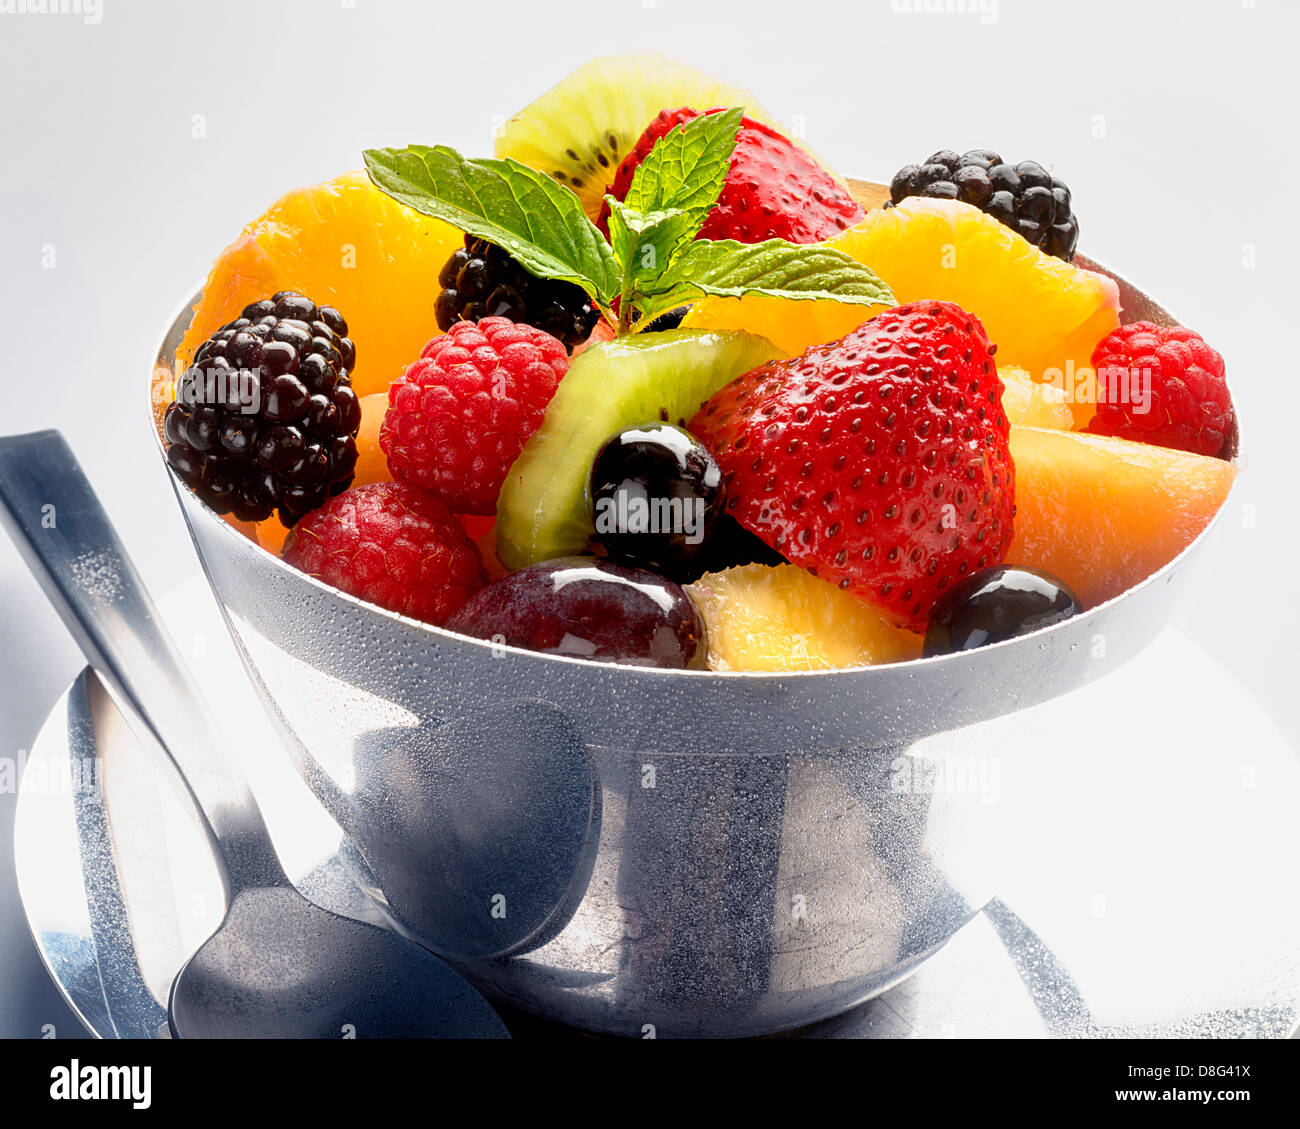 fruit in dish - Stock Image